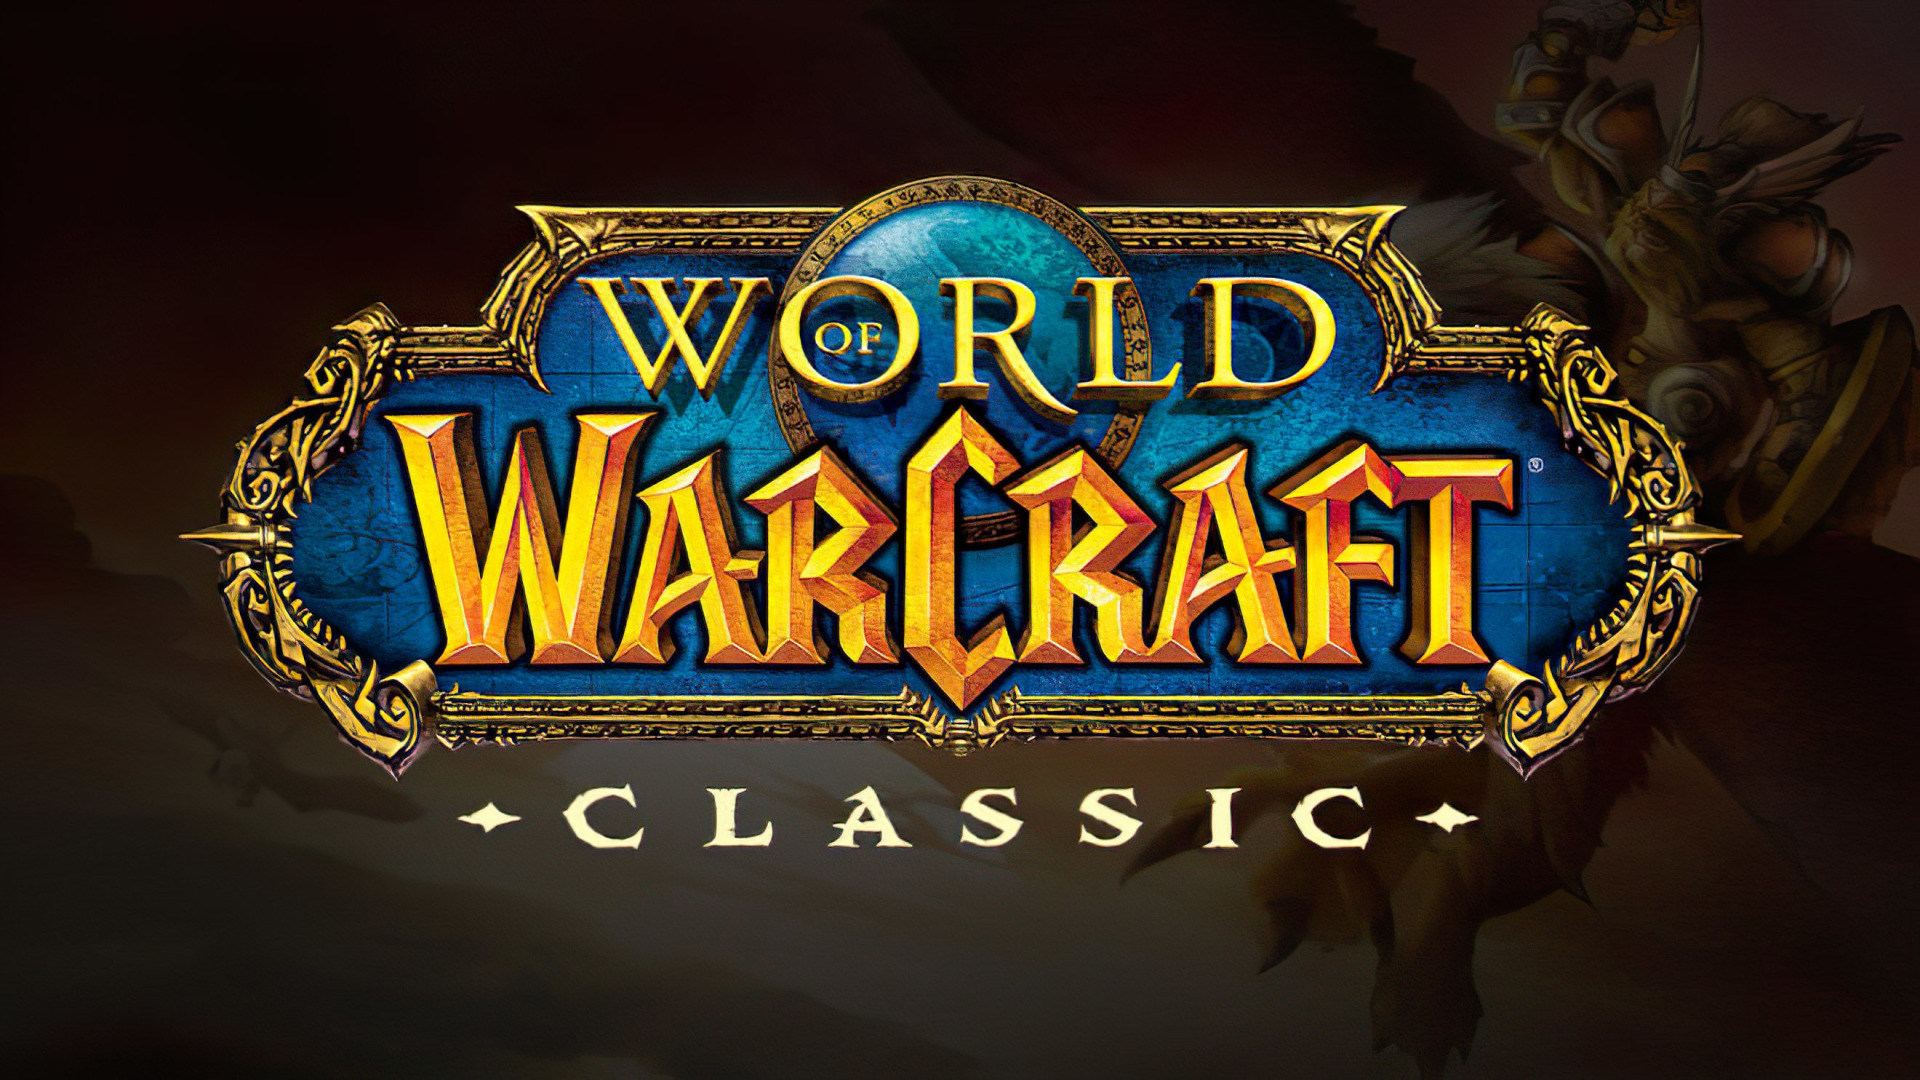 Gaming, Logo, Spiel, Games, Blizzard, Mmorpg, World of Warcraft, Wow, WoW Classic, World of Warcraft Classic